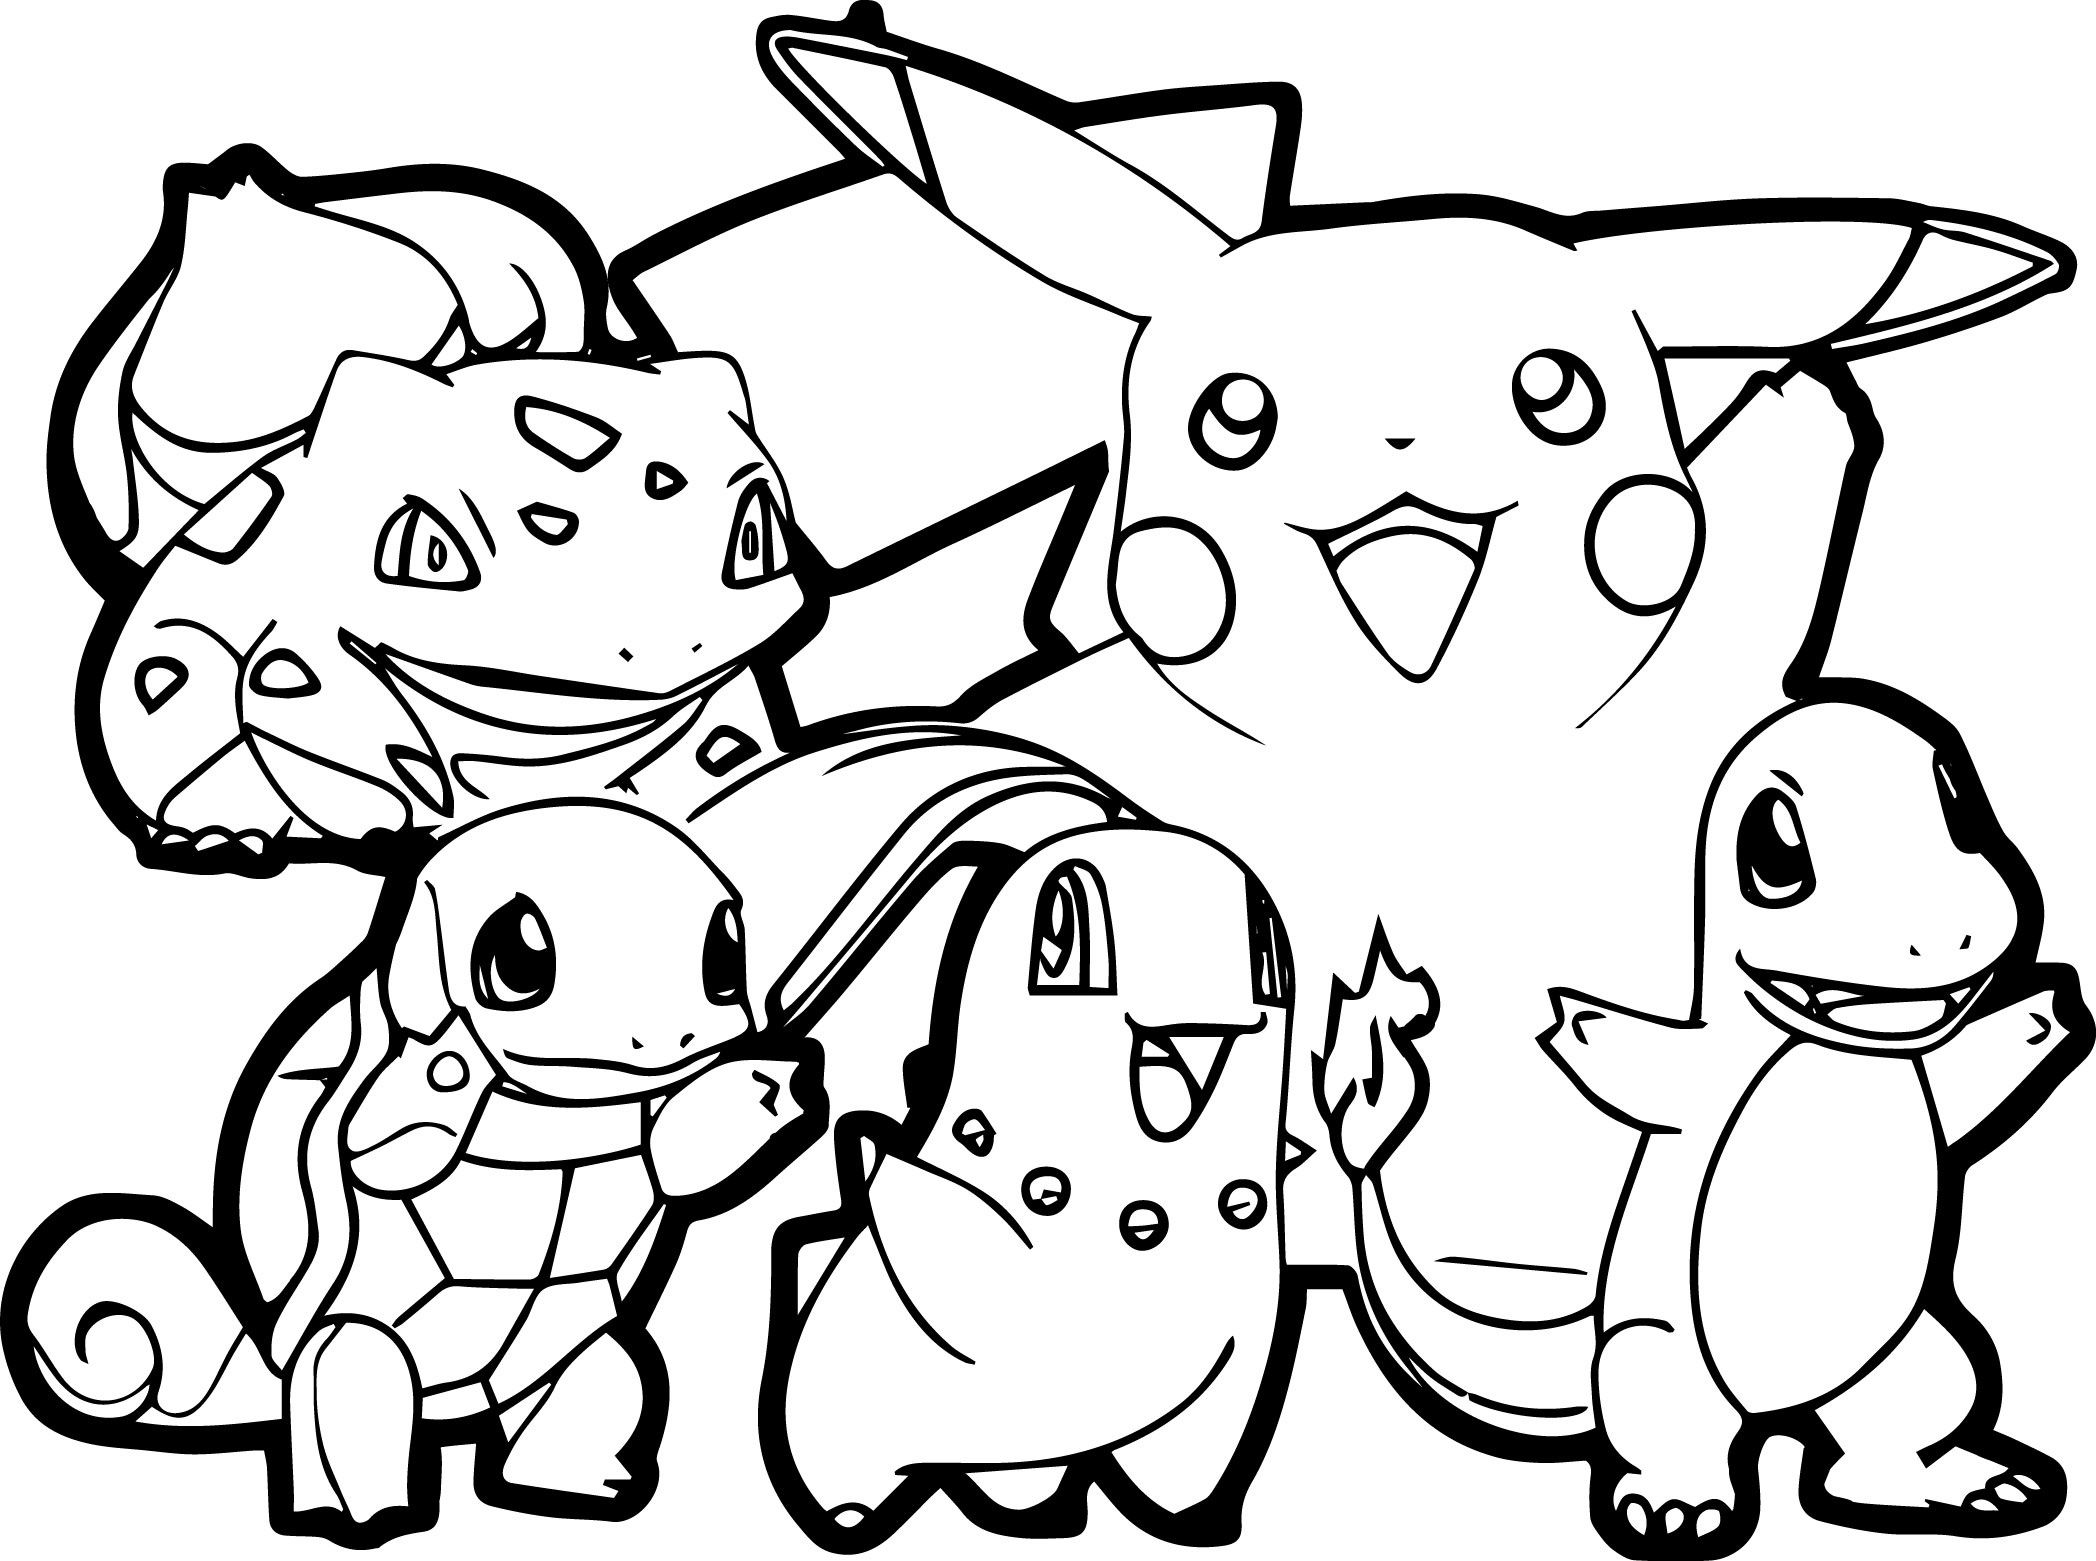 Pokemon Gengar Coloring Sketch Templates Pokemon Coloring Pages